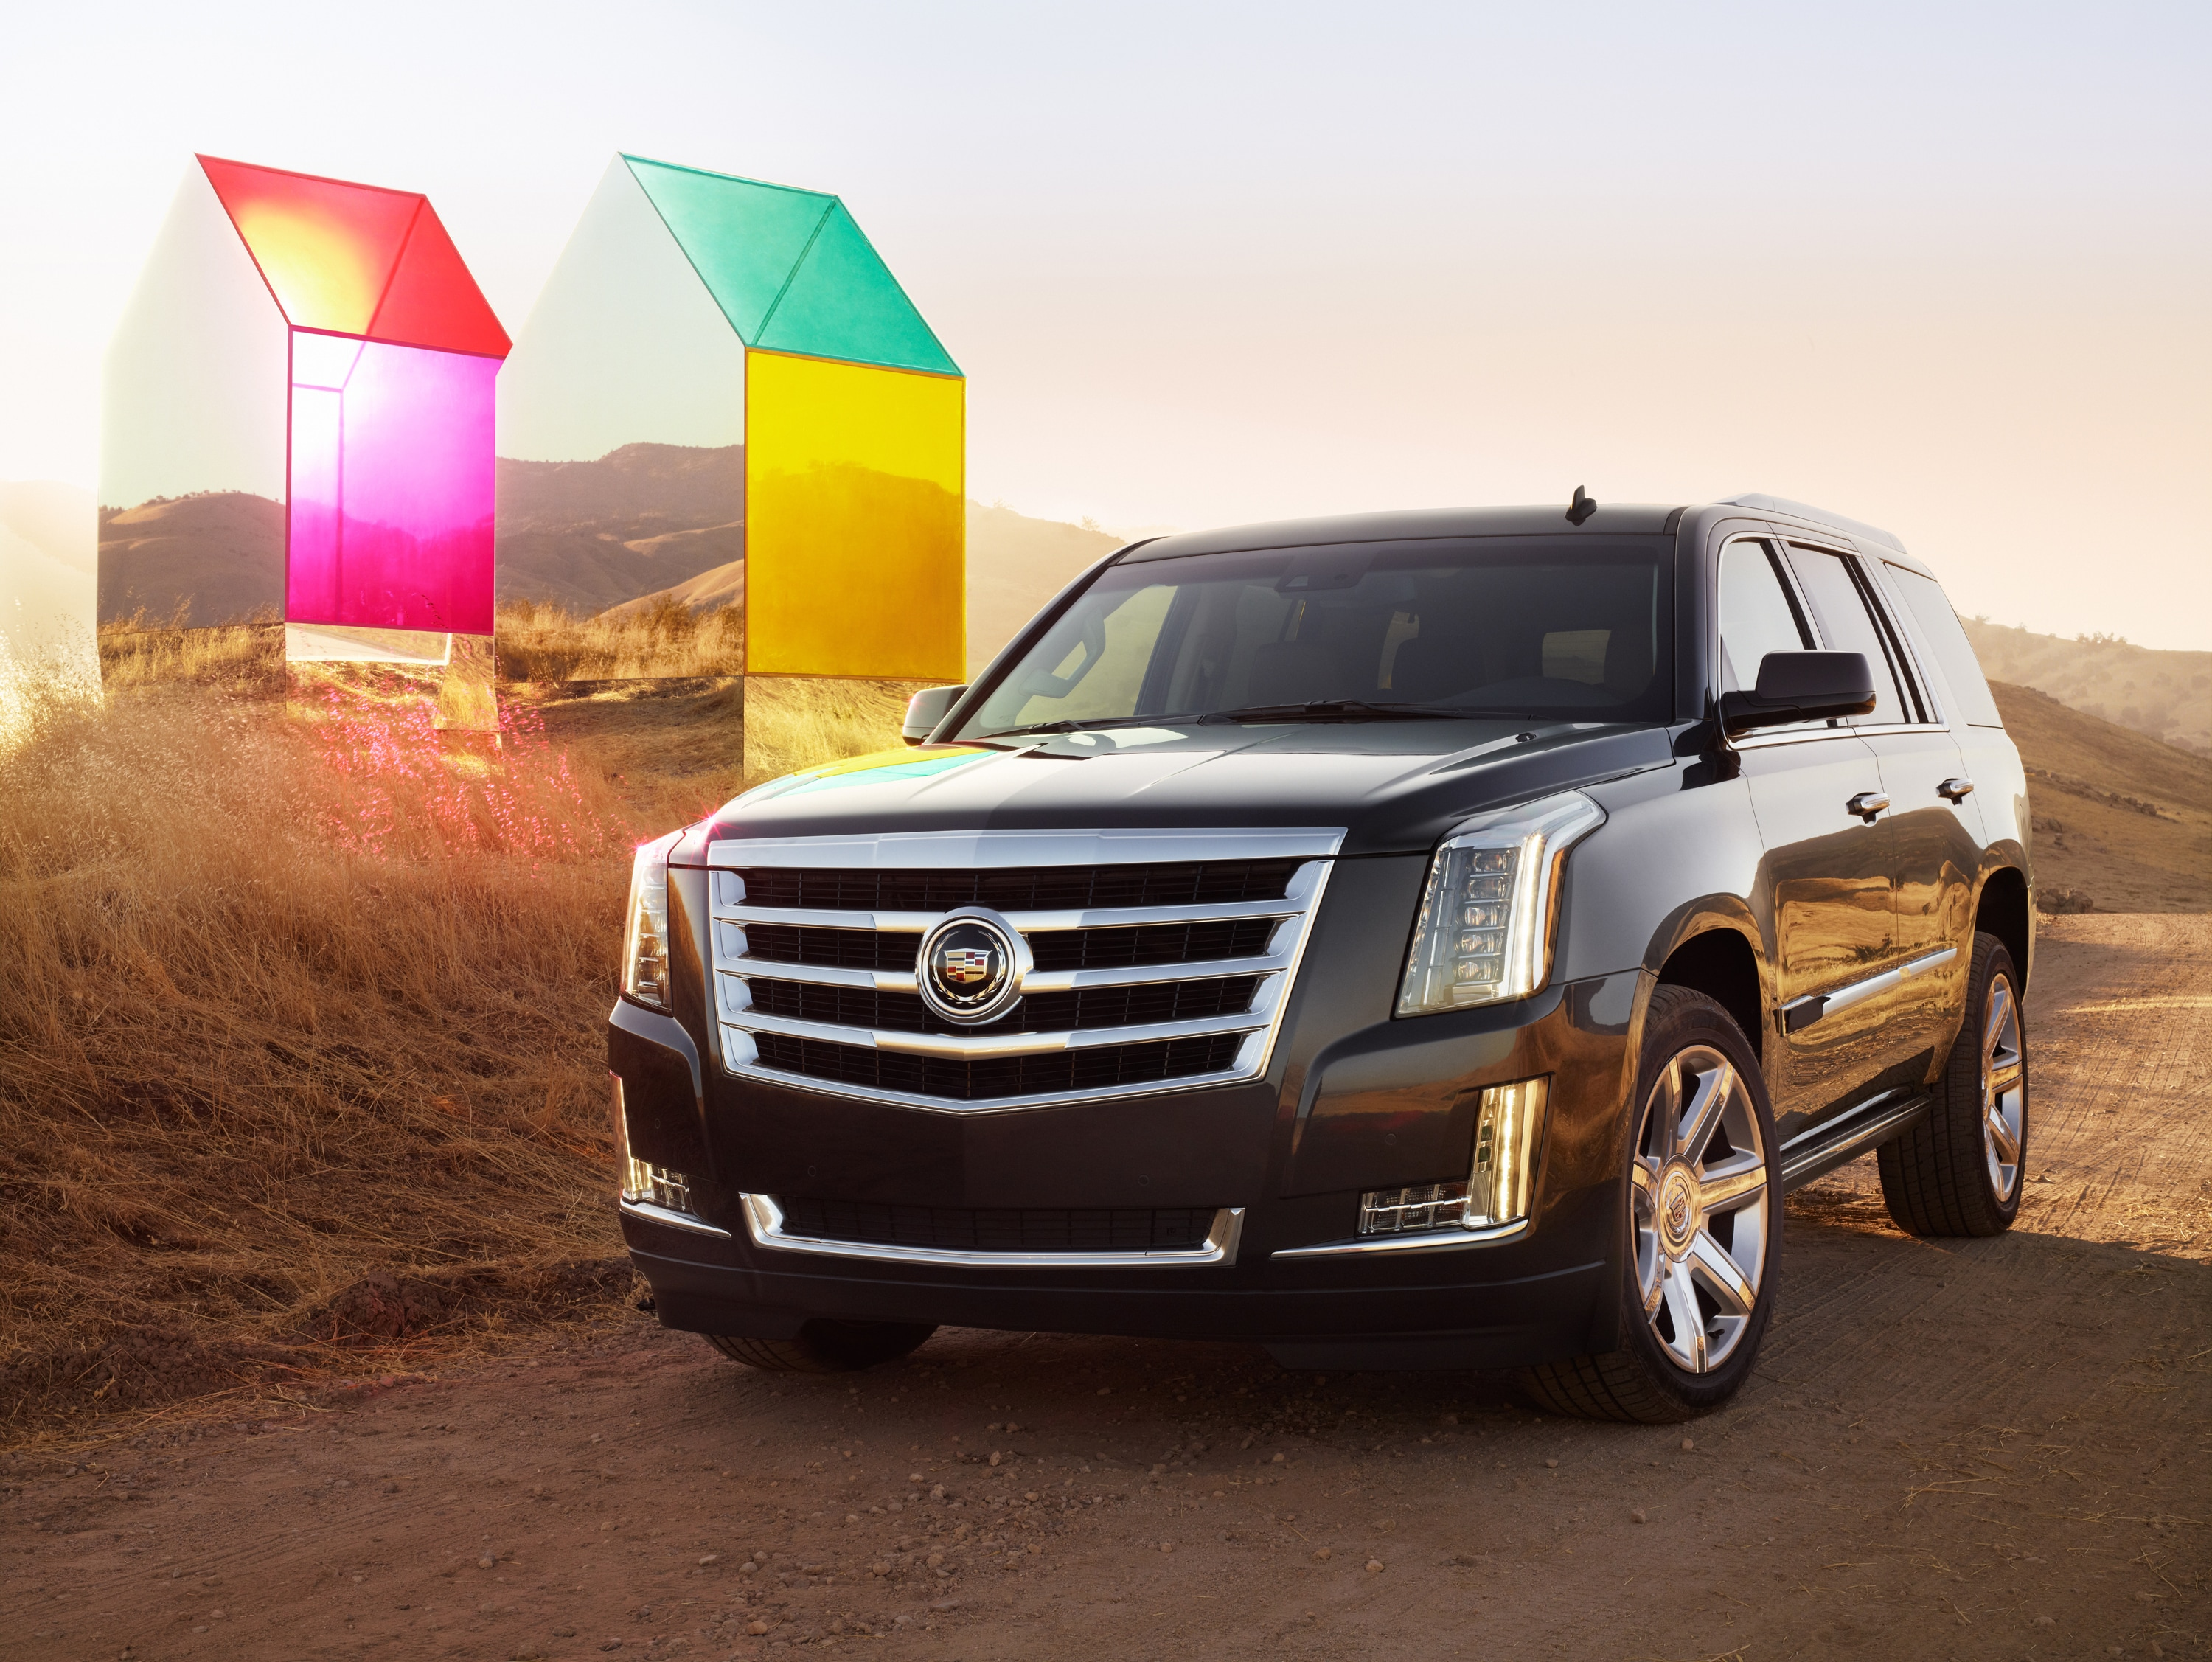 Check Out the all new 2015 Cadillac Escalade in Sioux Falls